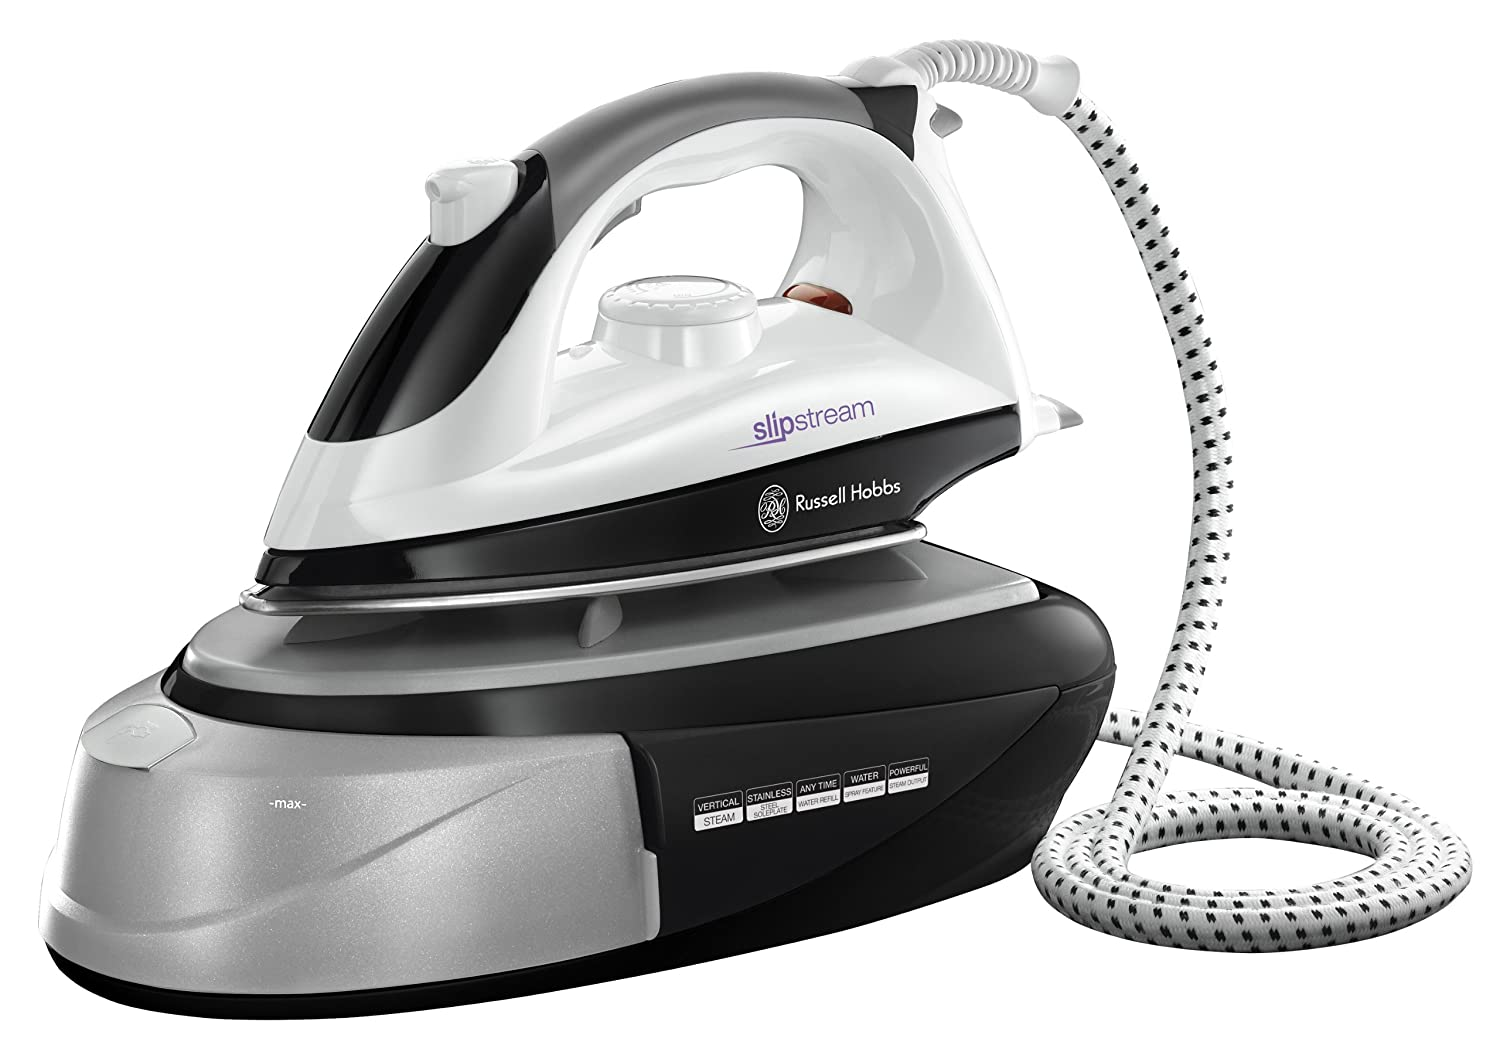 Russell Hobbs Slipstream Station Iron 14863, 1800 W - Black and ...